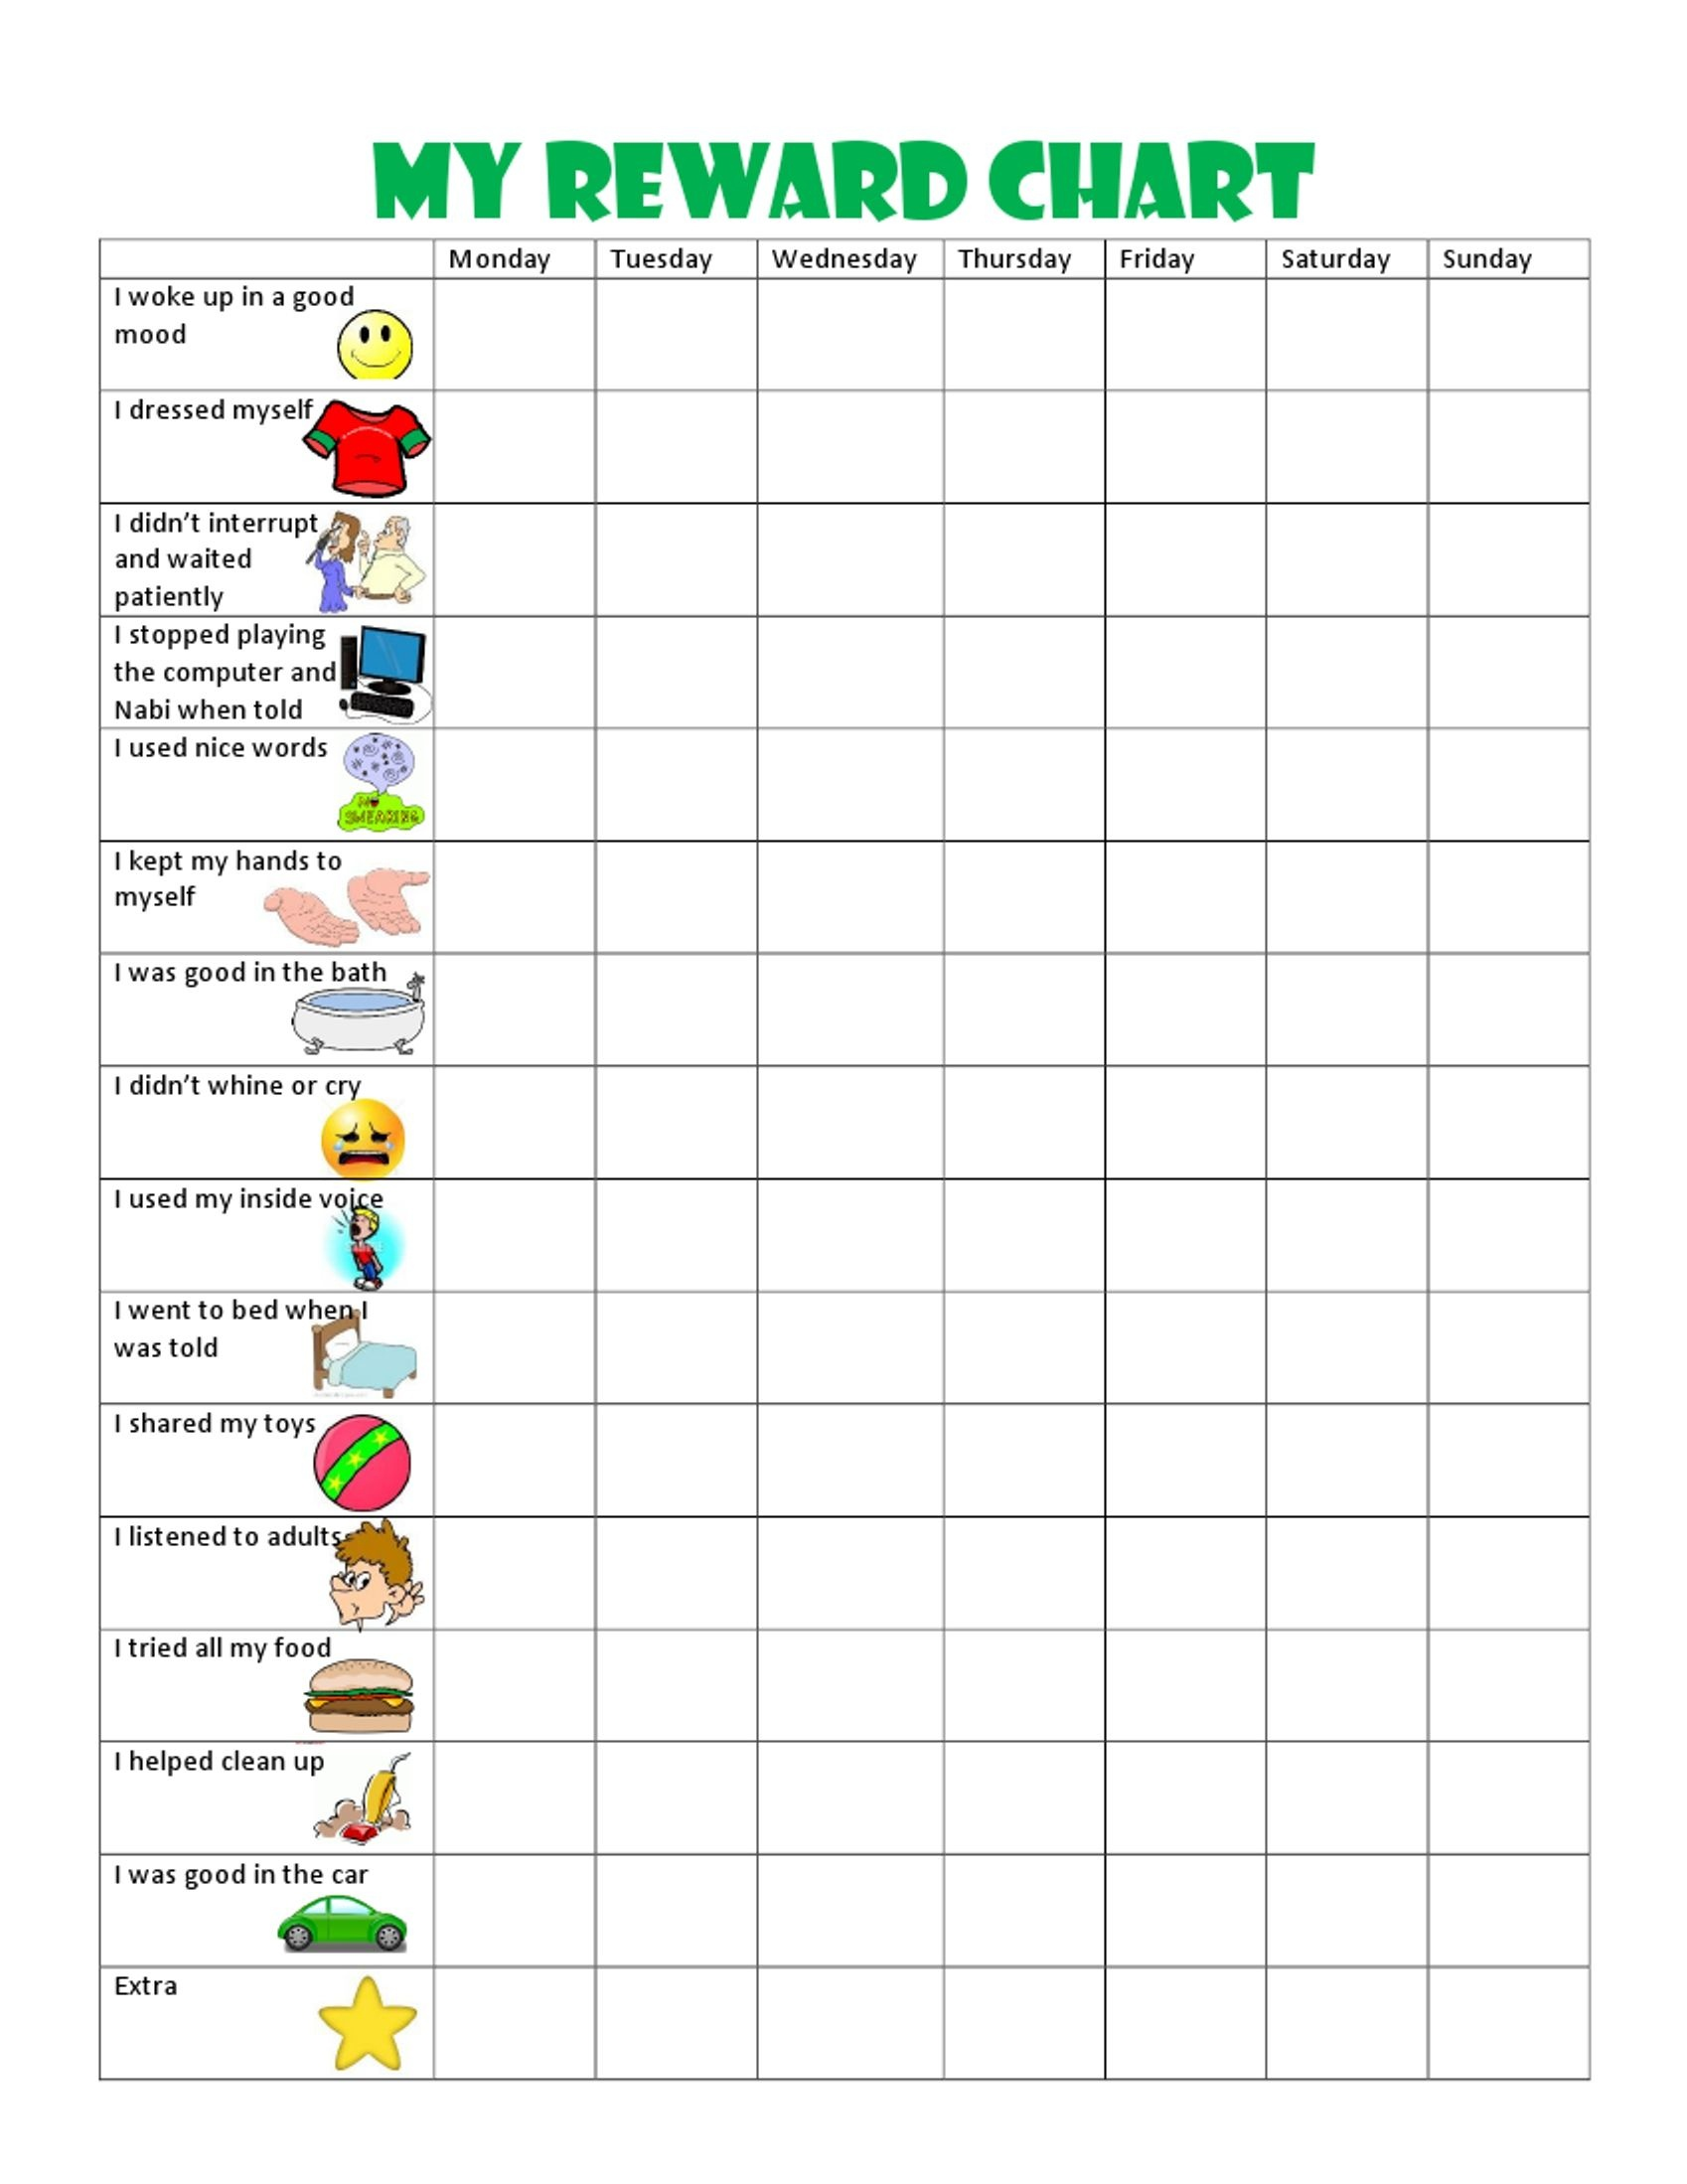 Image Result For Free Printable Behavior Charts For 6 Year Olds - Reward Charts For Toddlers Free Printable